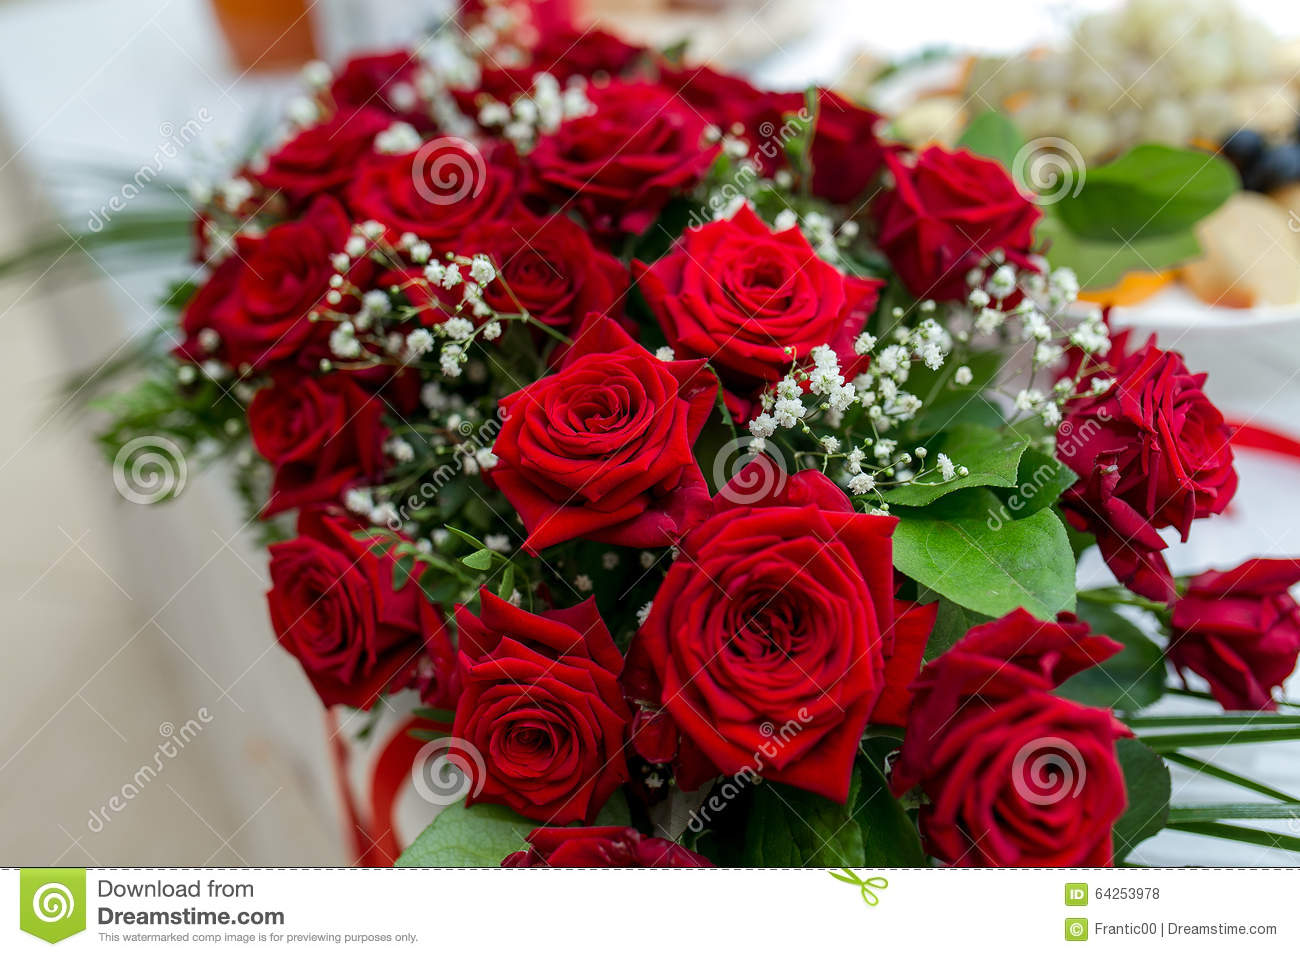 Fresh flowers decoration red roses at wedding table for Decoration flowers